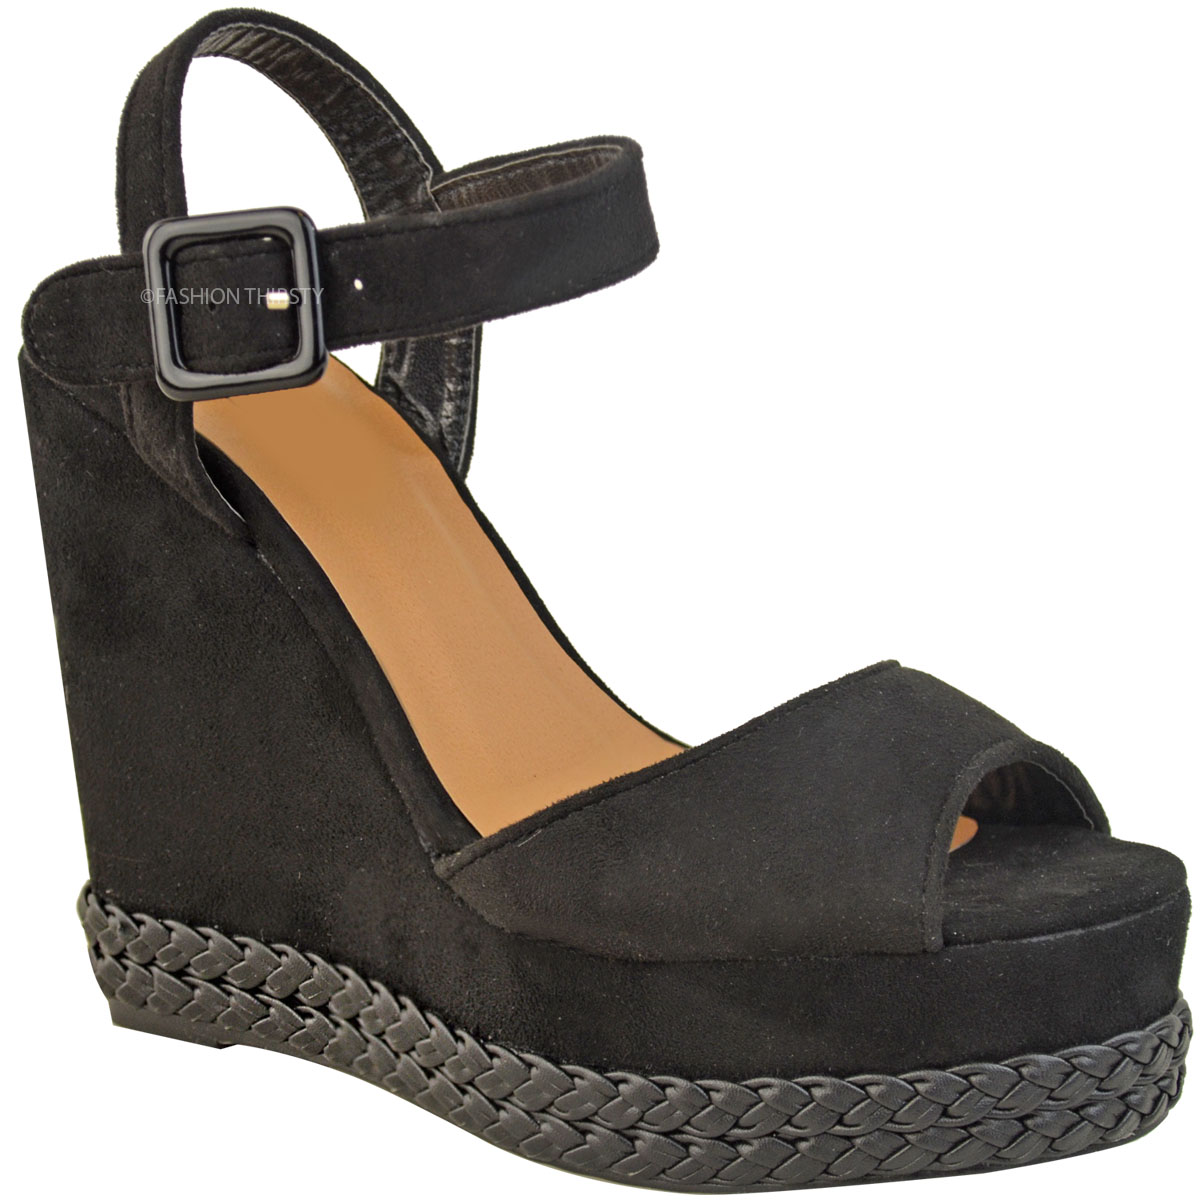 Women's Wedges: Heels that Hold Up Wedge styles portray femininity in a way that few silhouettes can. Whether owing to the curved heel or sheer height, the wedge design instantly elevates any look.